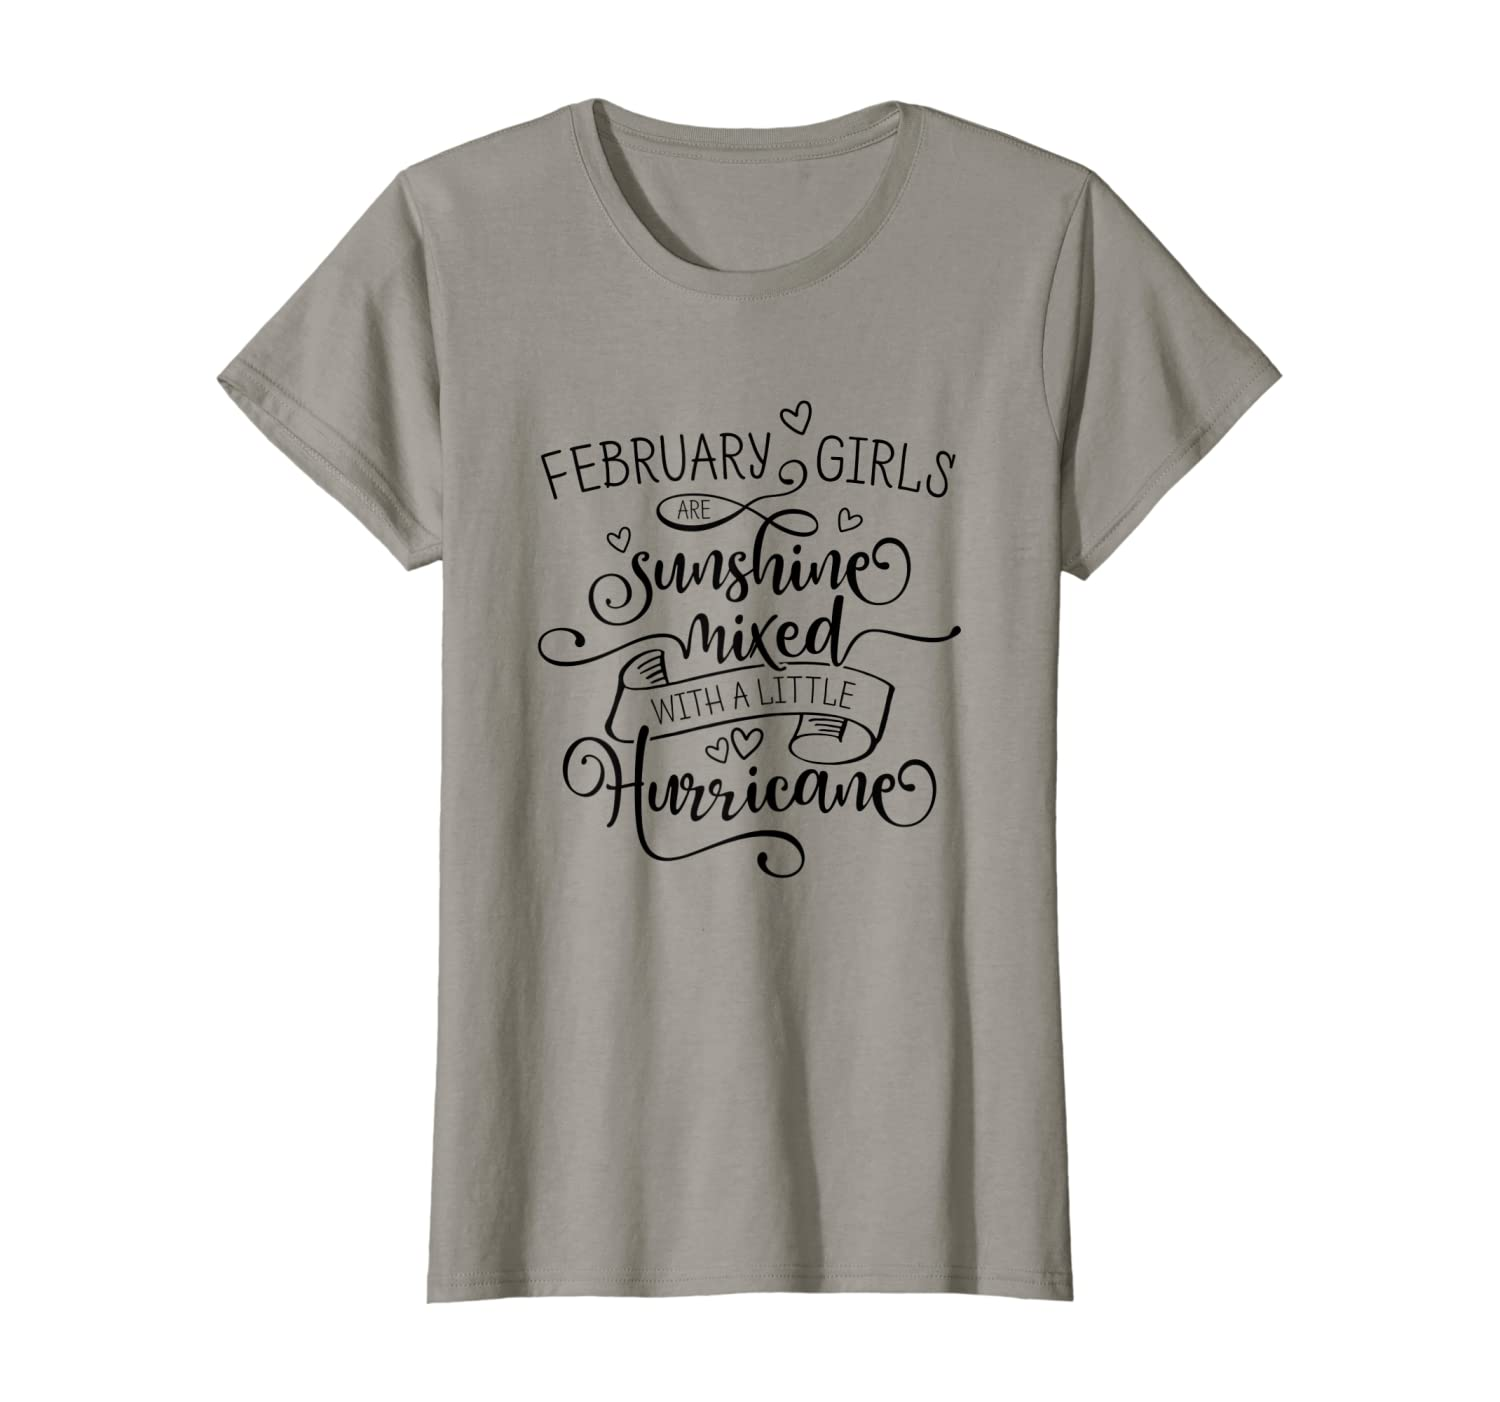 February Girls Are Sunshine Mixed With A Little Hurricane T-Shirt